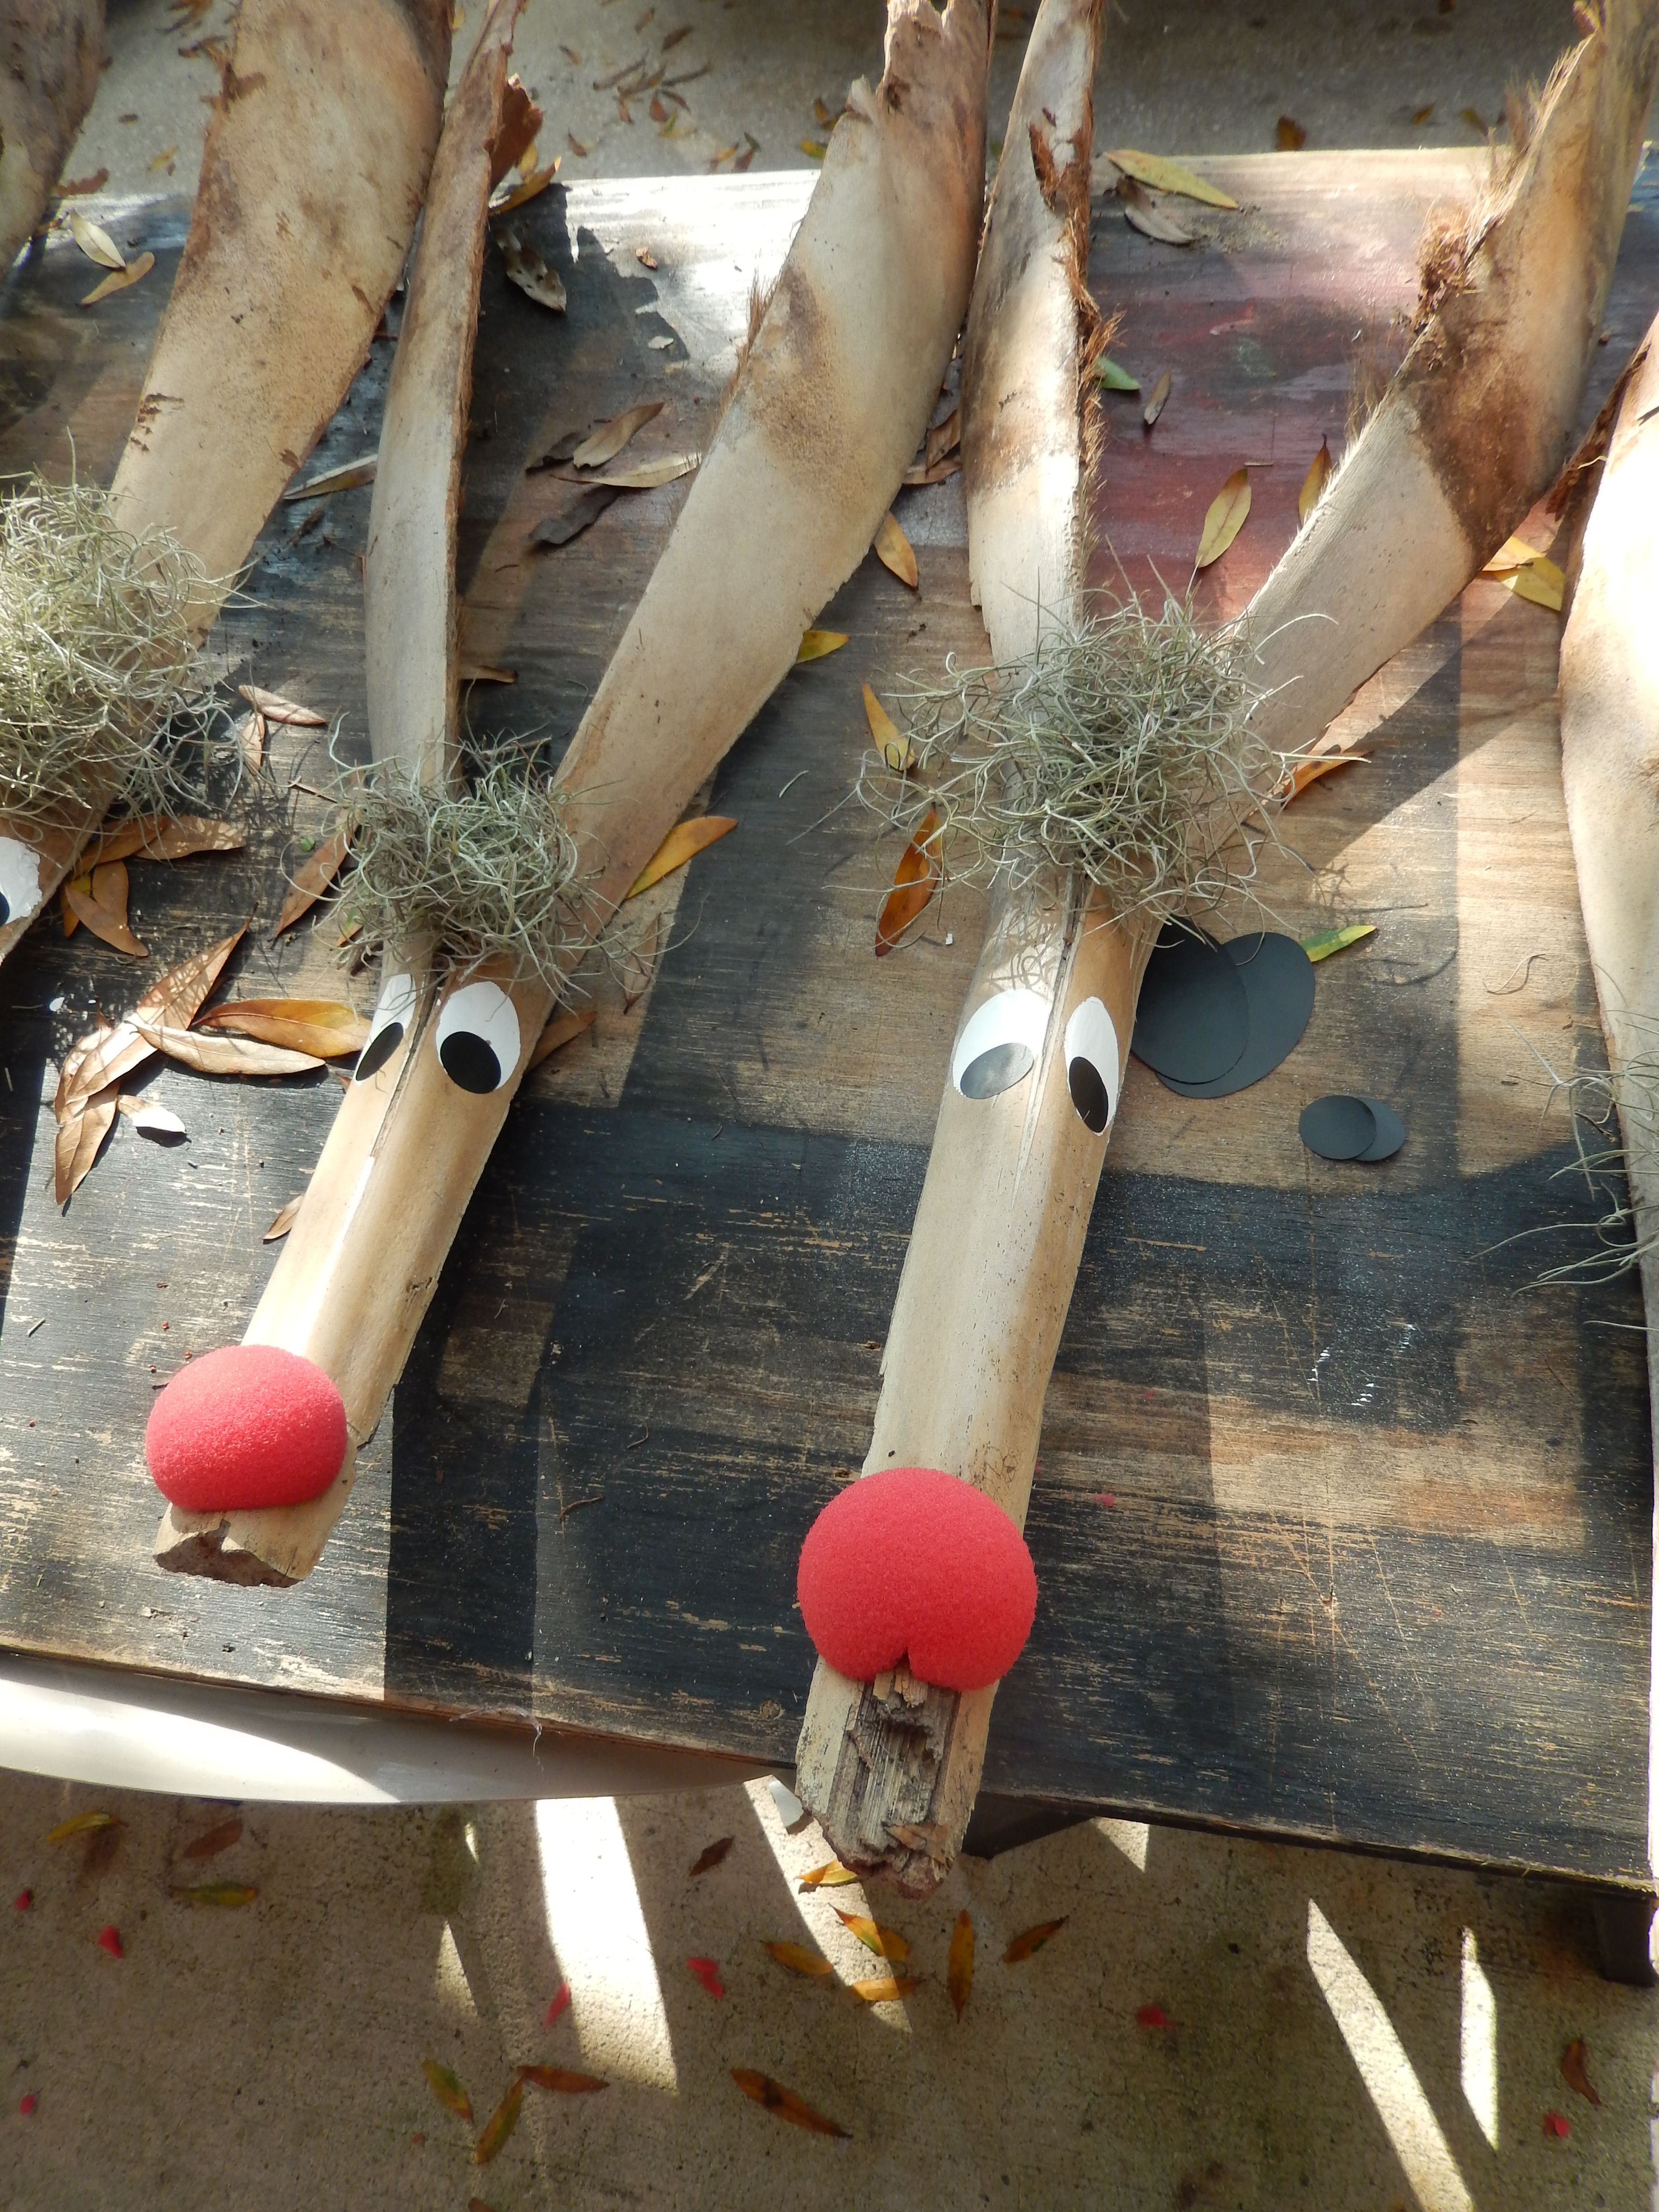 Palm Frond Reindeer  Use Spanish moss from trees, foam clown nose